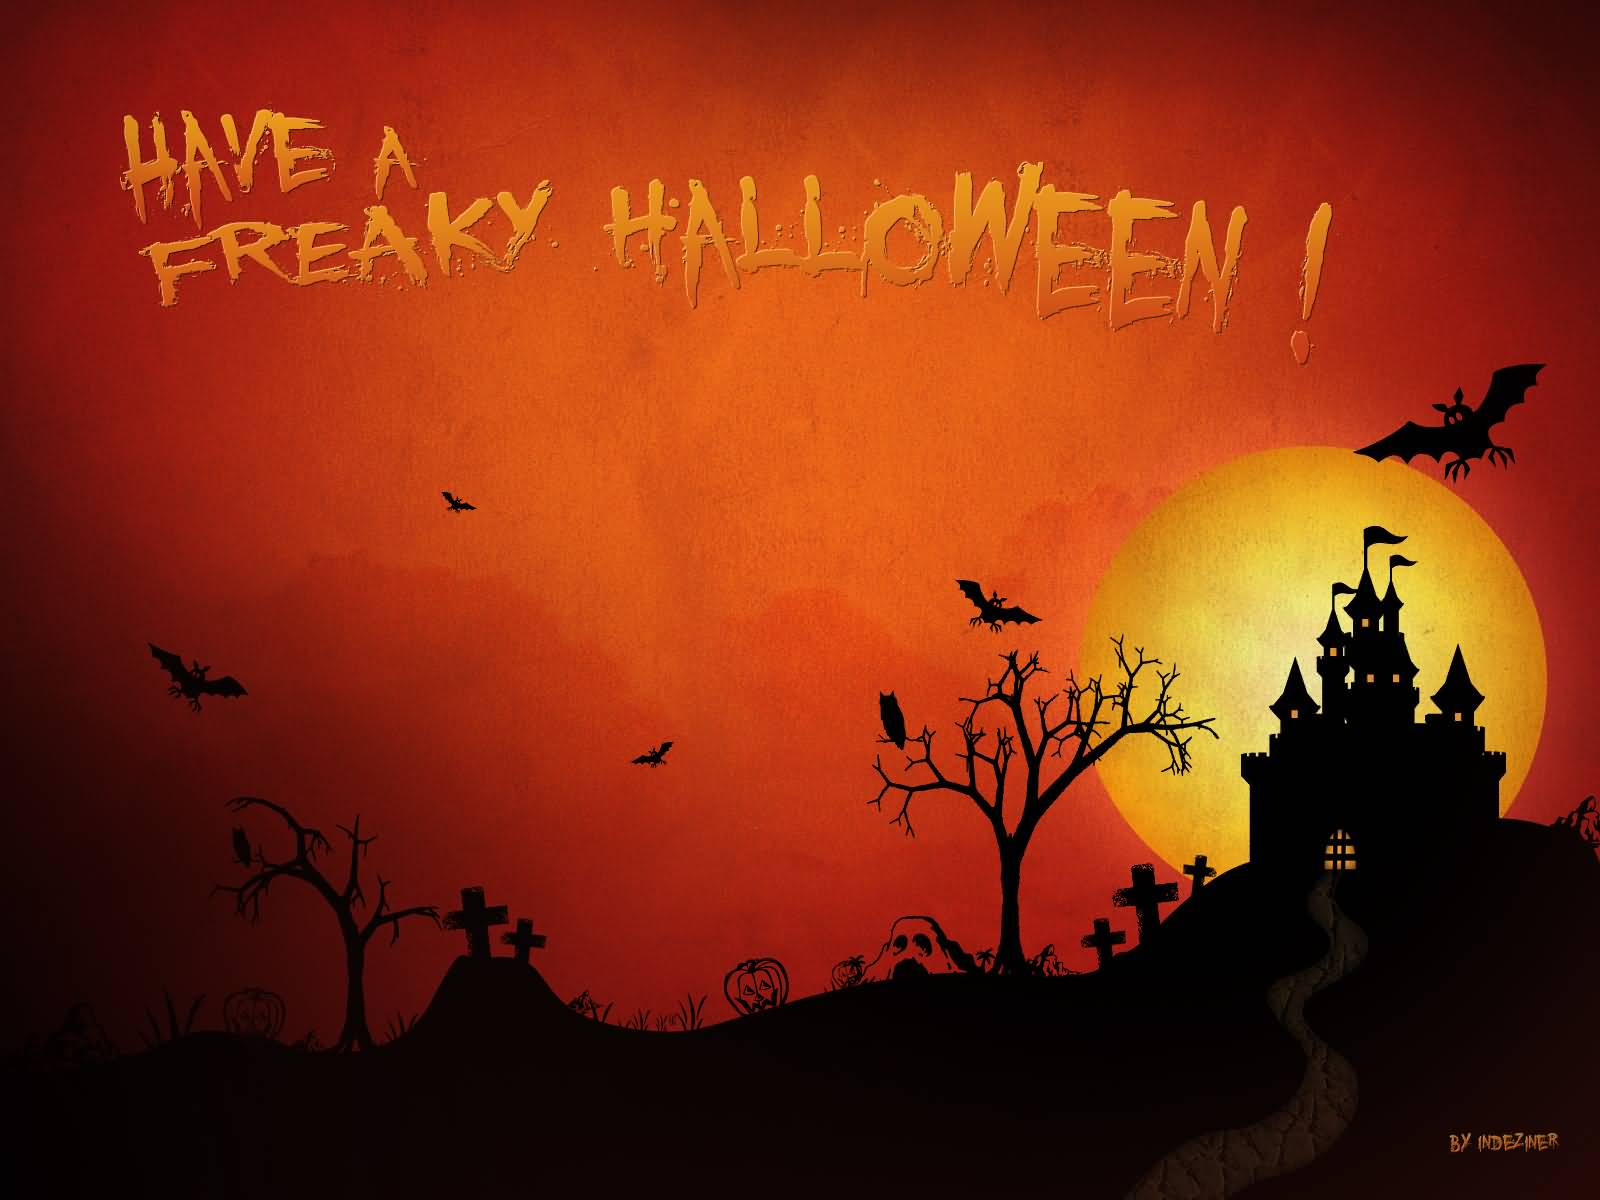 Great Wallpaper Halloween Red - Have-A-Freaky-Halloween-Wallpaper  Picture_468074.jpg